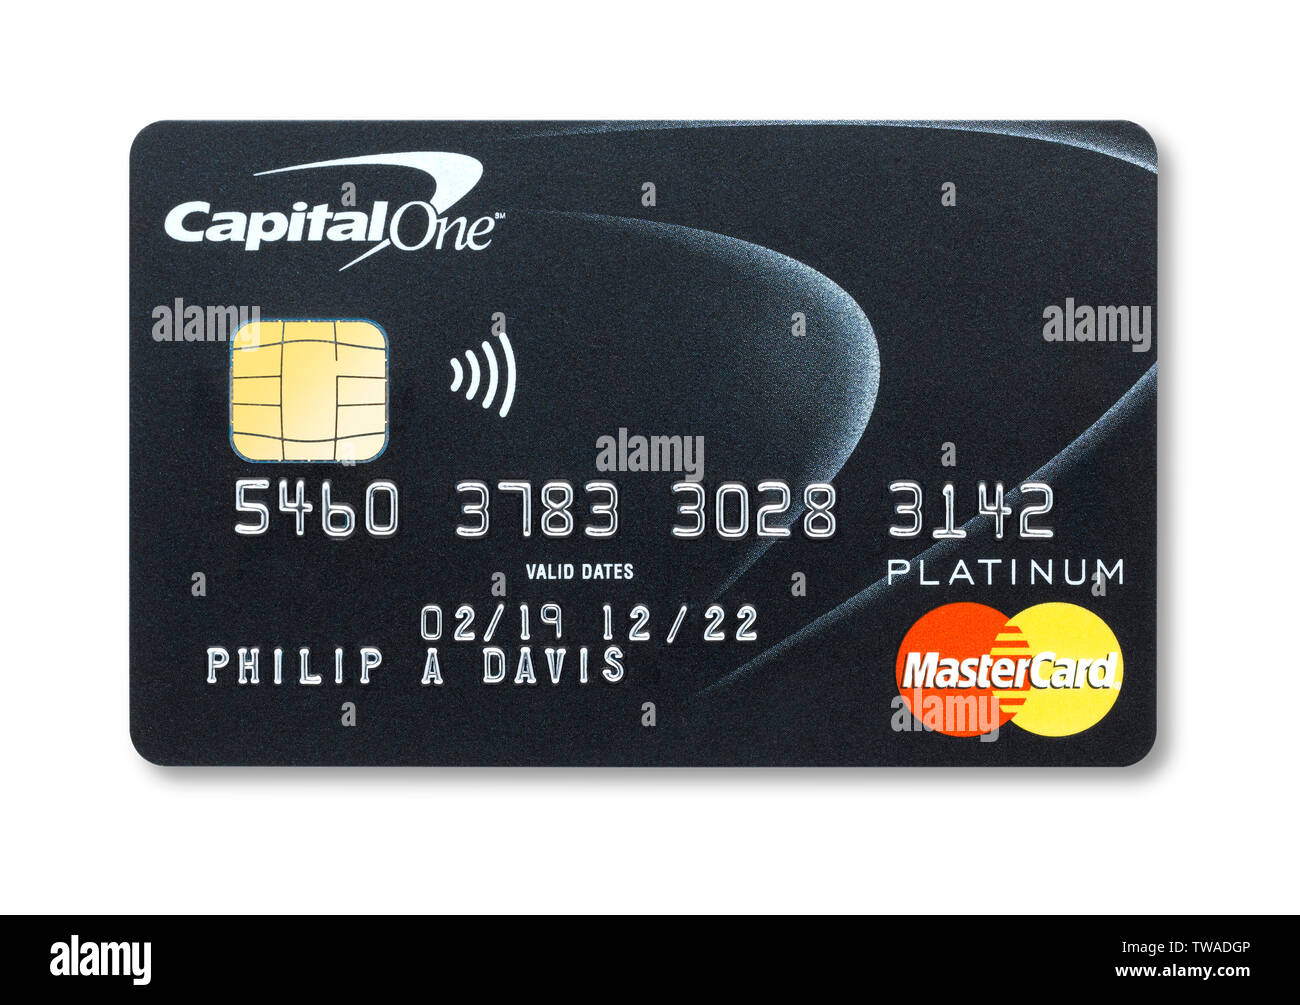 Capital one Mastercard credit card Stock Photo